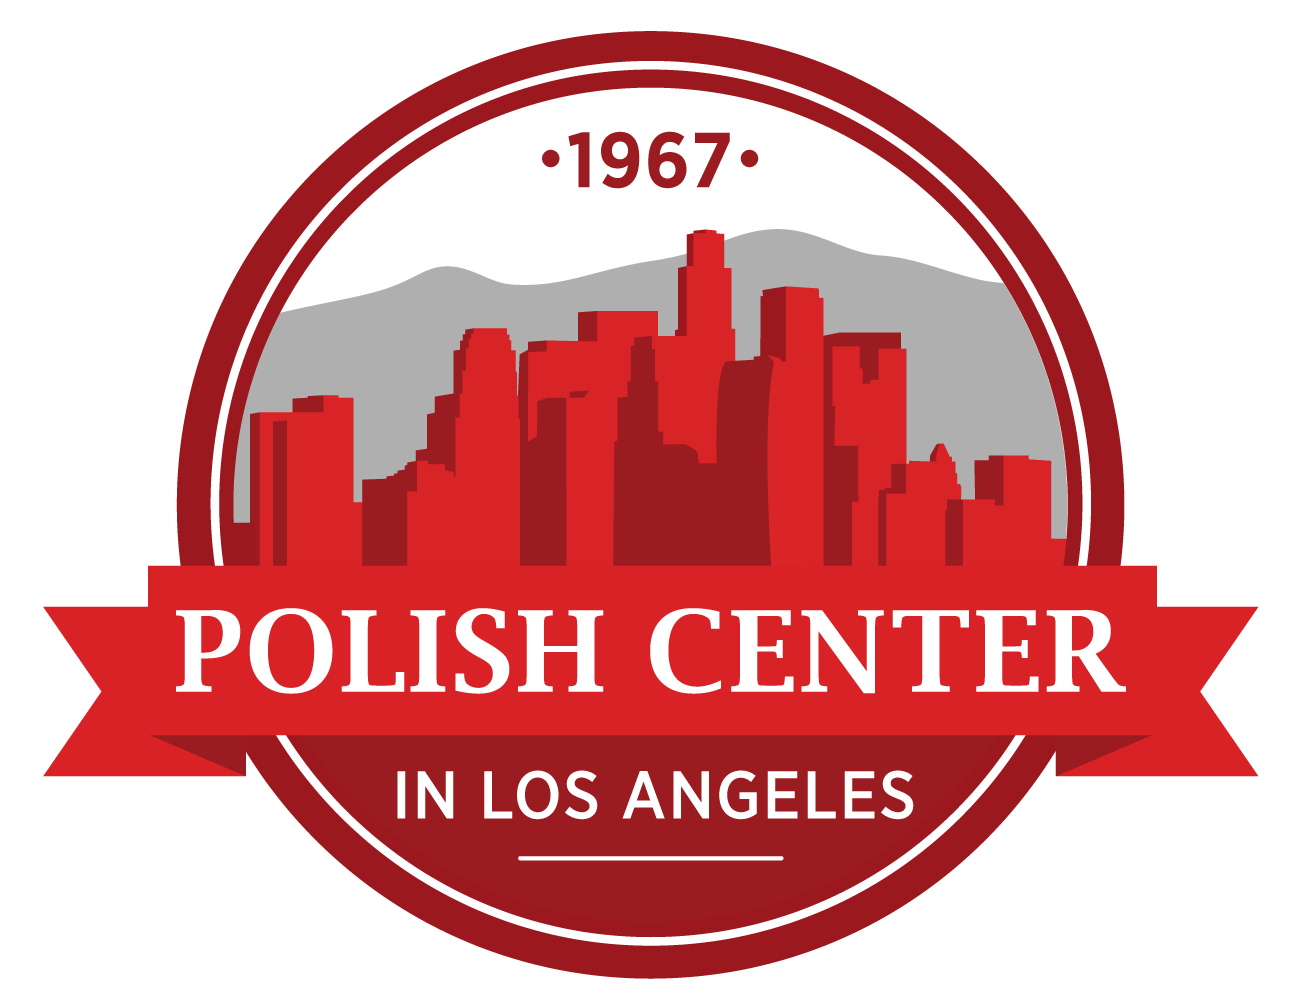 Polish Center in Los Angeles